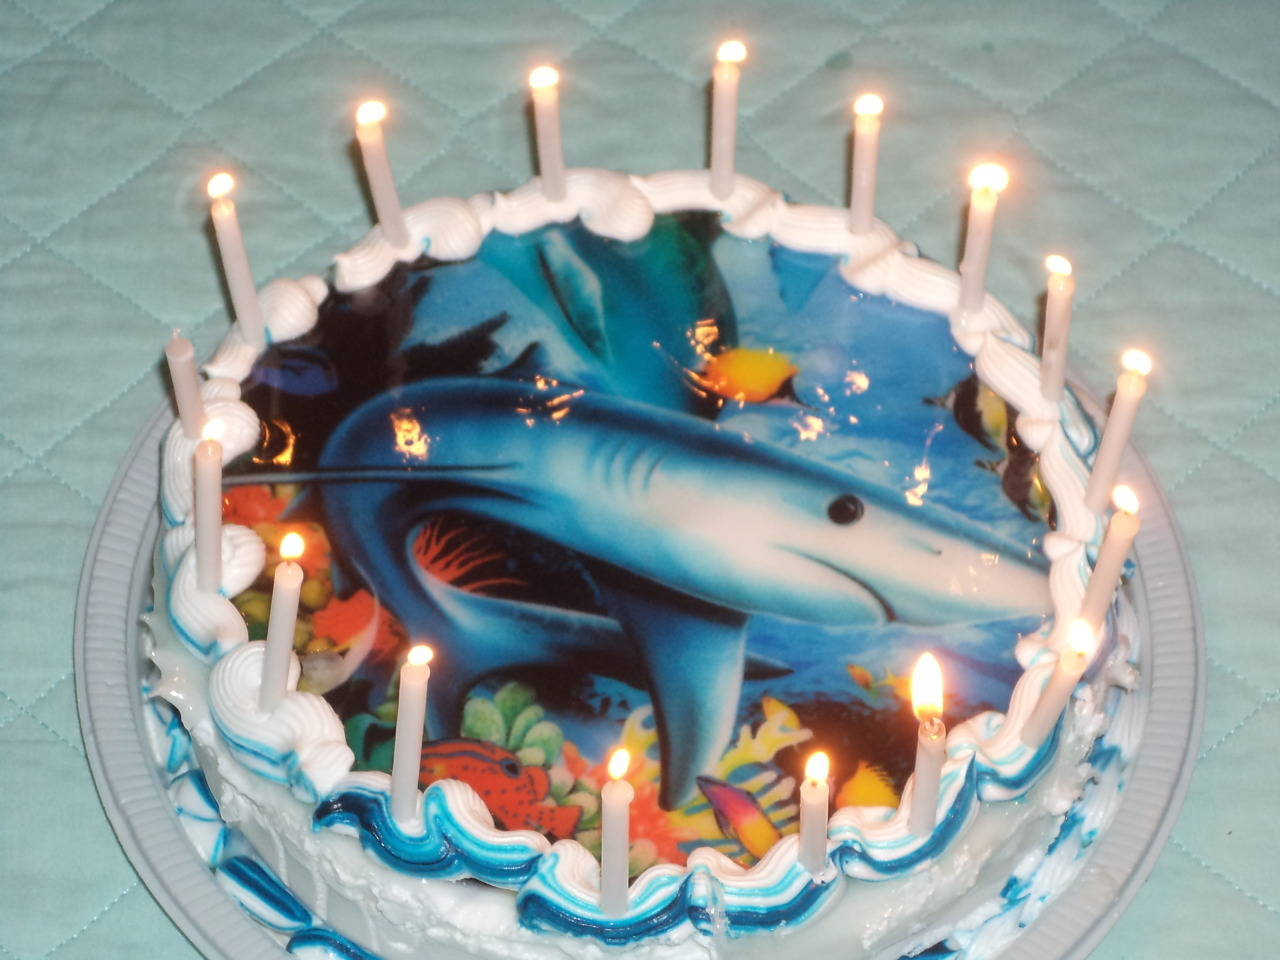 hotel room + shark cake. Could it be any better?